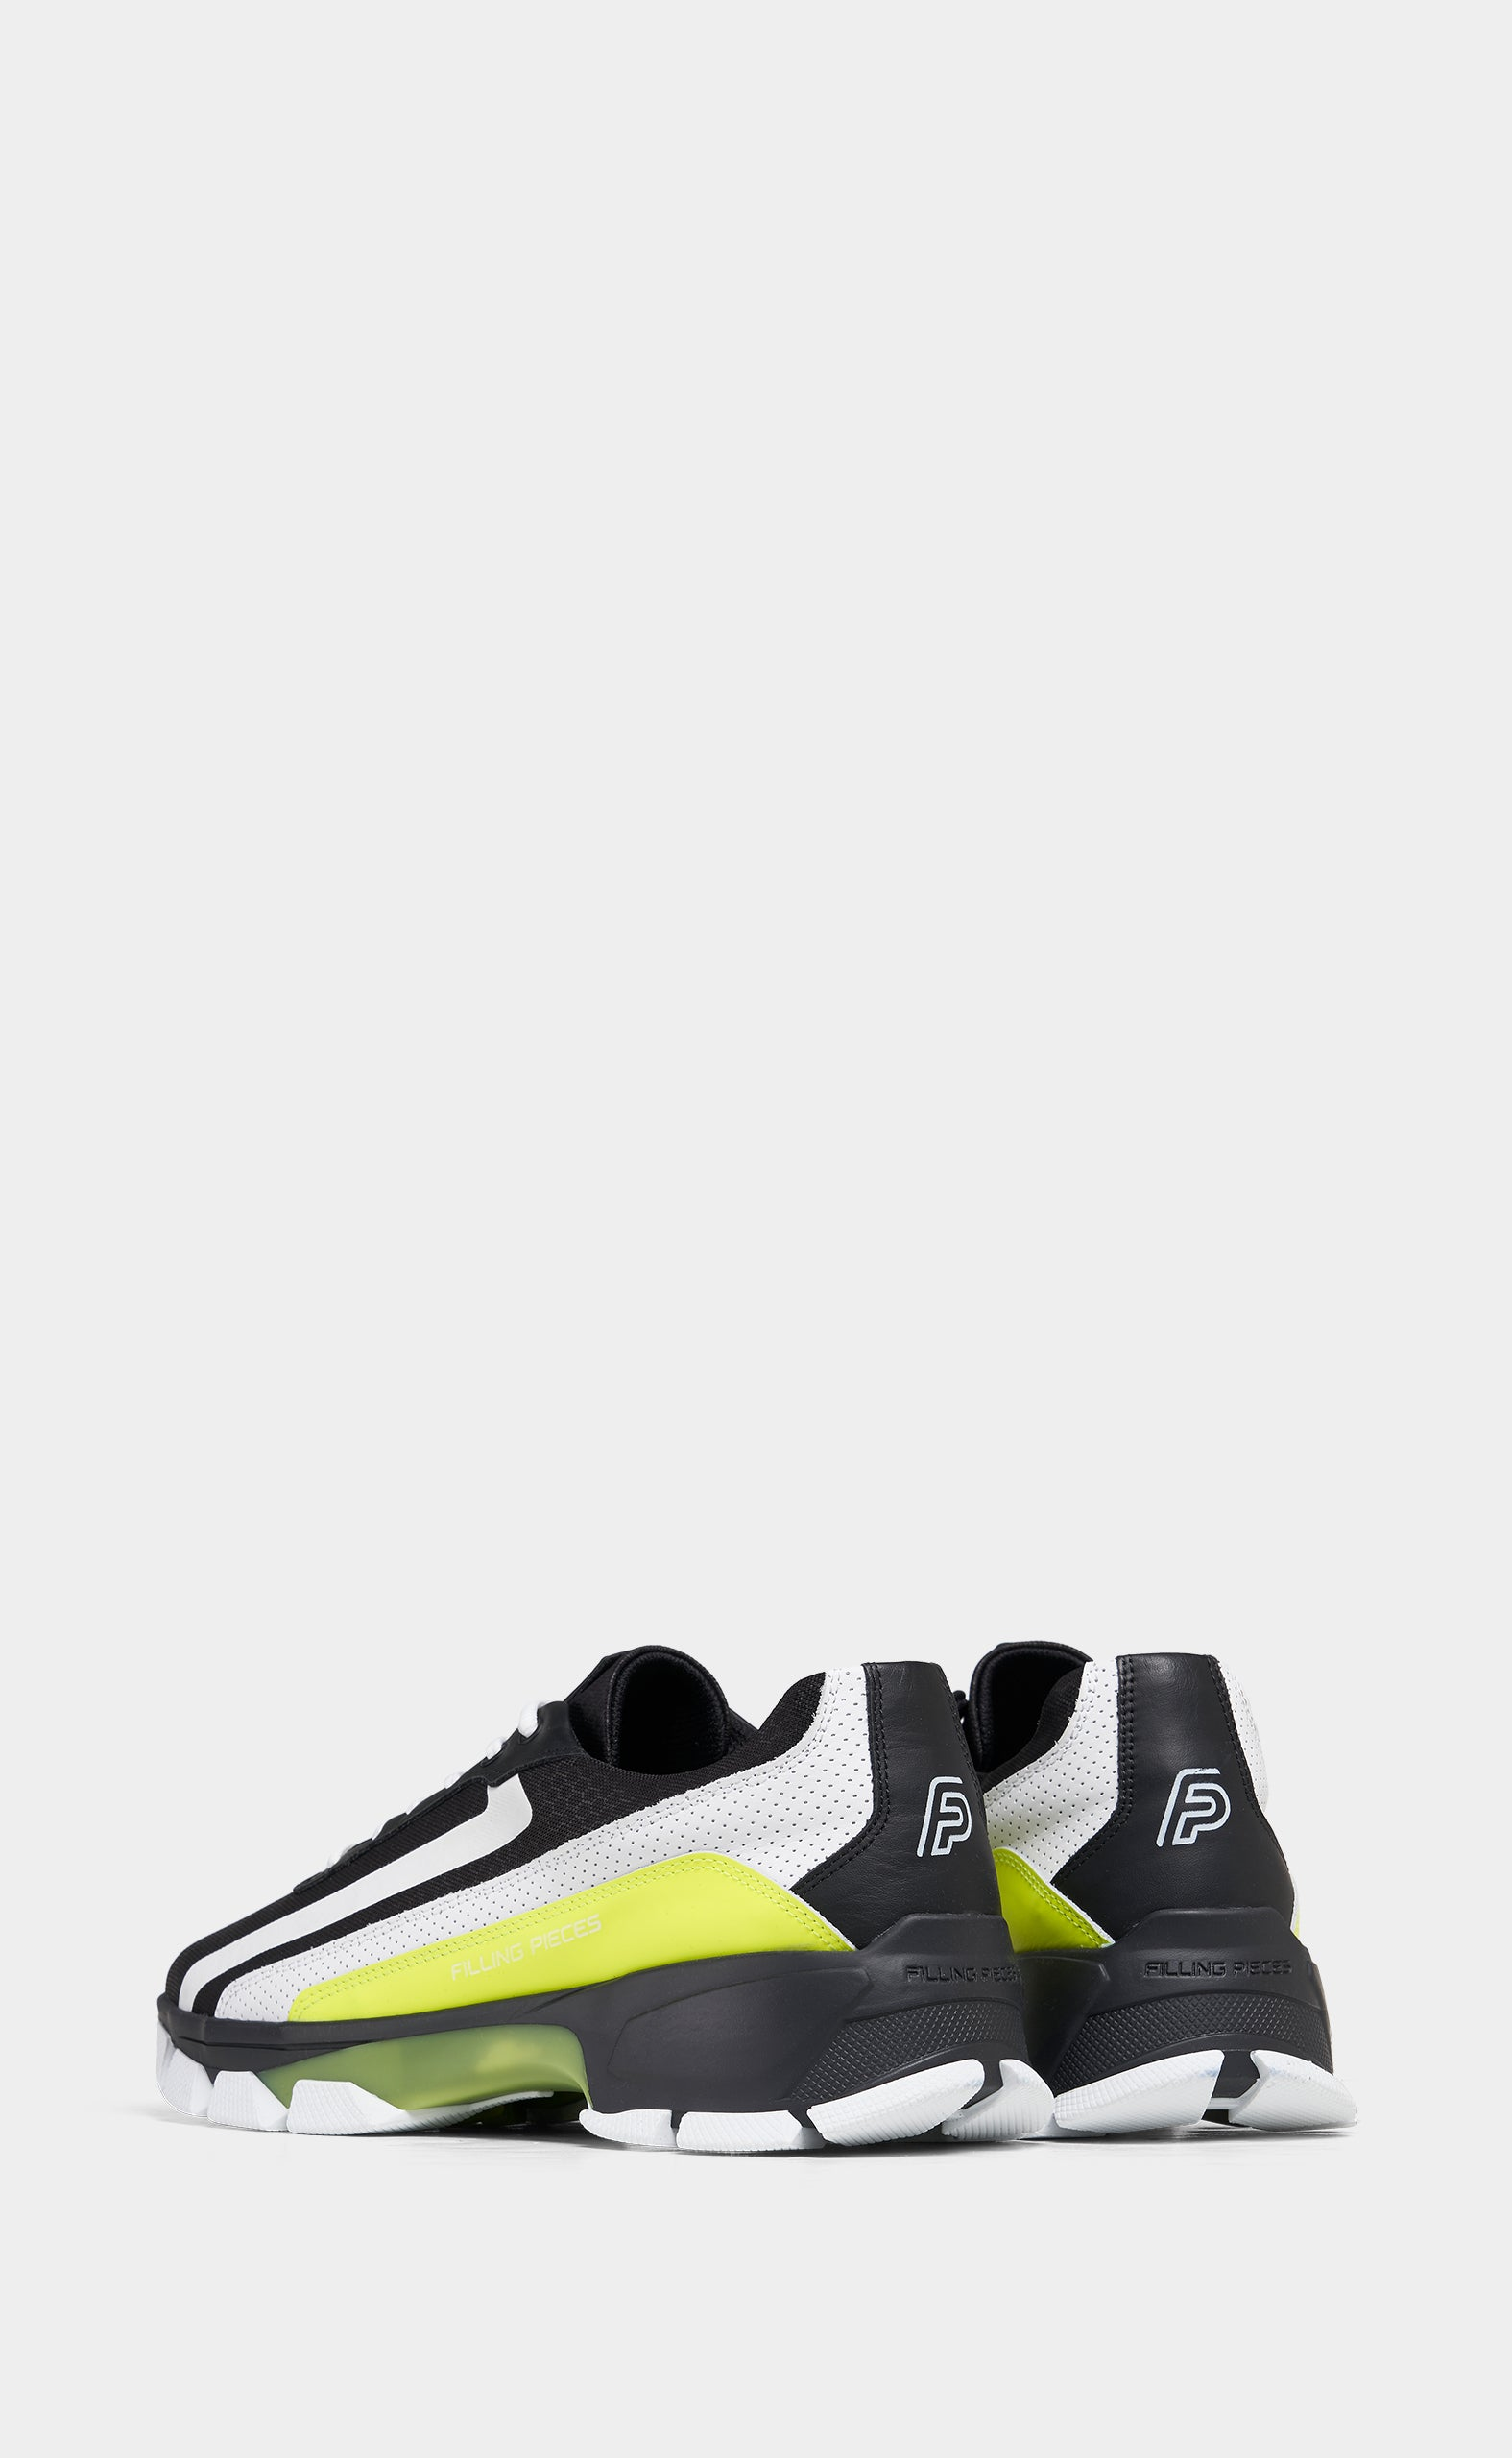 Track Radar Line Black Neon - men